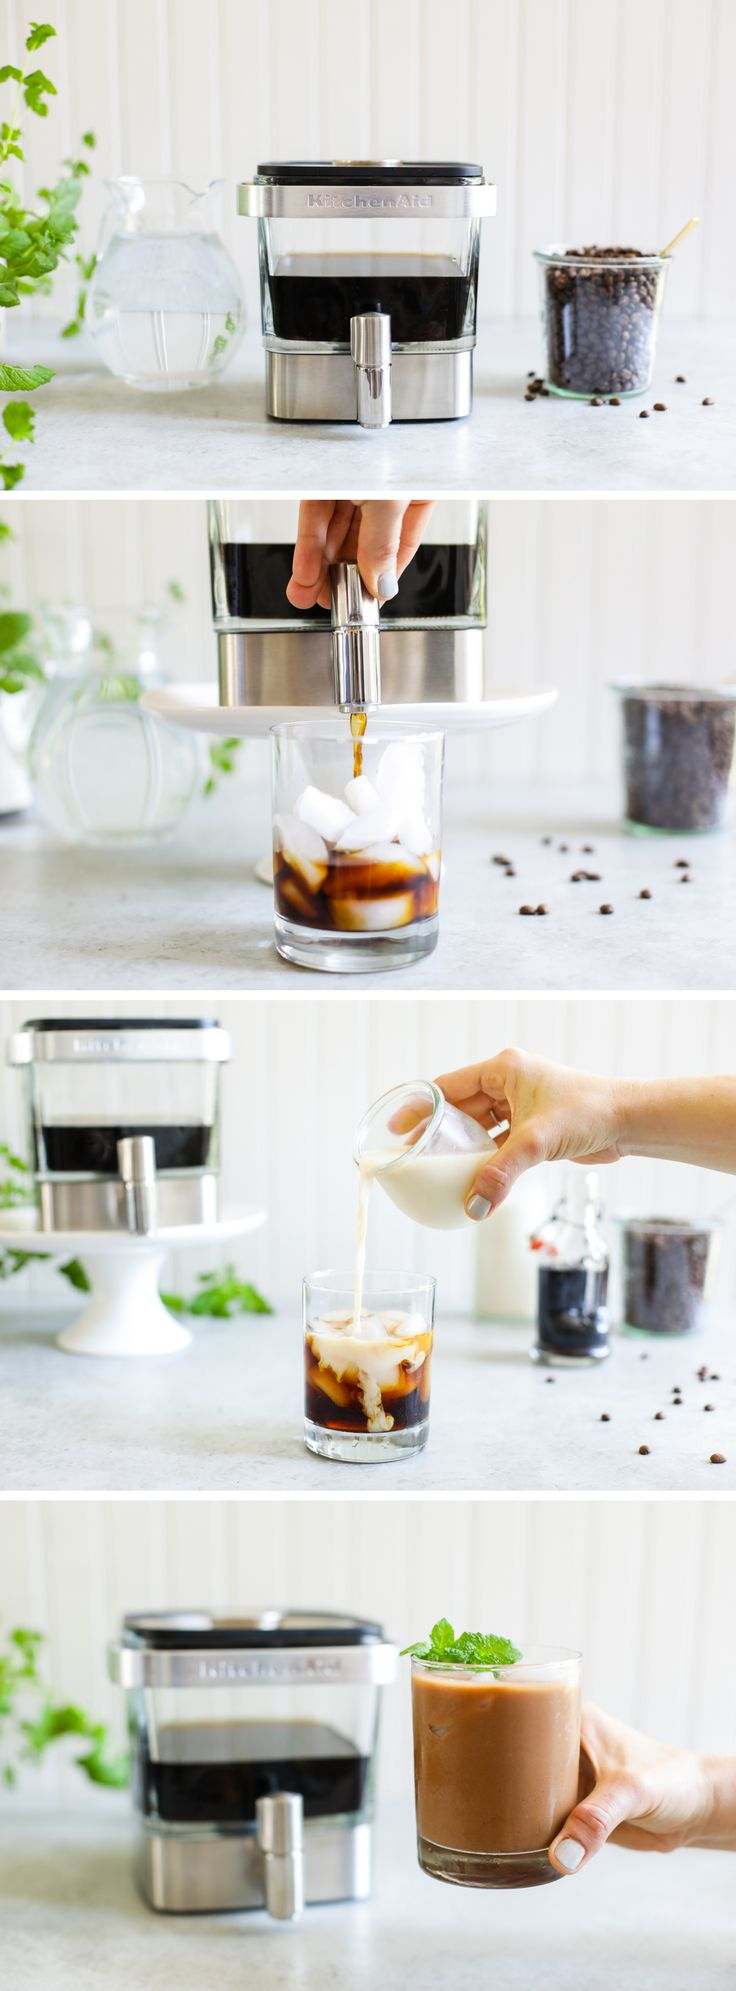 The KitchenAid® Cold Brew Coffee Maker makes more than just a great cup of coffee, like this Vanilla-Maple Cold Brew. @LiveSimplyMom shares her 5 Easy Cold Brew Recipes on our blog: http://kitchen.ai/A7eYlo